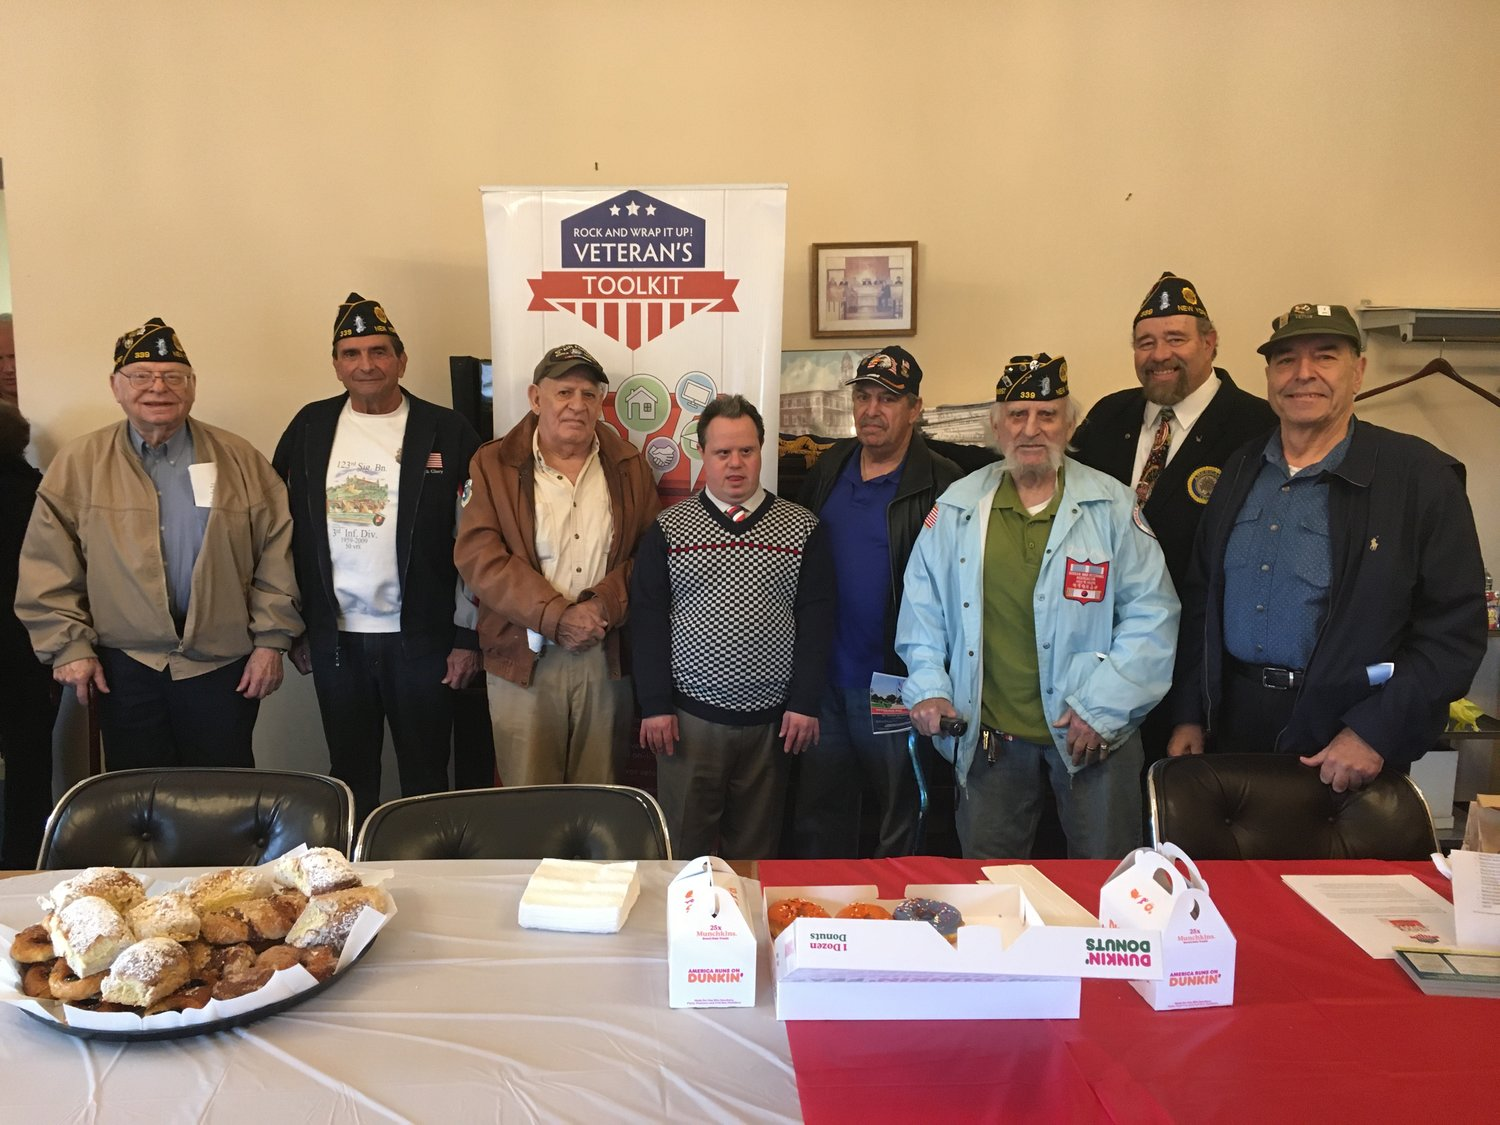 American Legion Lawrence-Cedarhurst Post 339 members at the Village of Cedarhurst's Veterans Day celebration on Nov. 11. From left, Harry Sidor, Frank Basile, Vincent Speziale, Harry Beltrani Jr., Mitch Danzeyger, Jack Leff, Post 339 commander Syd Mandelbaum and Ernie Weiss.